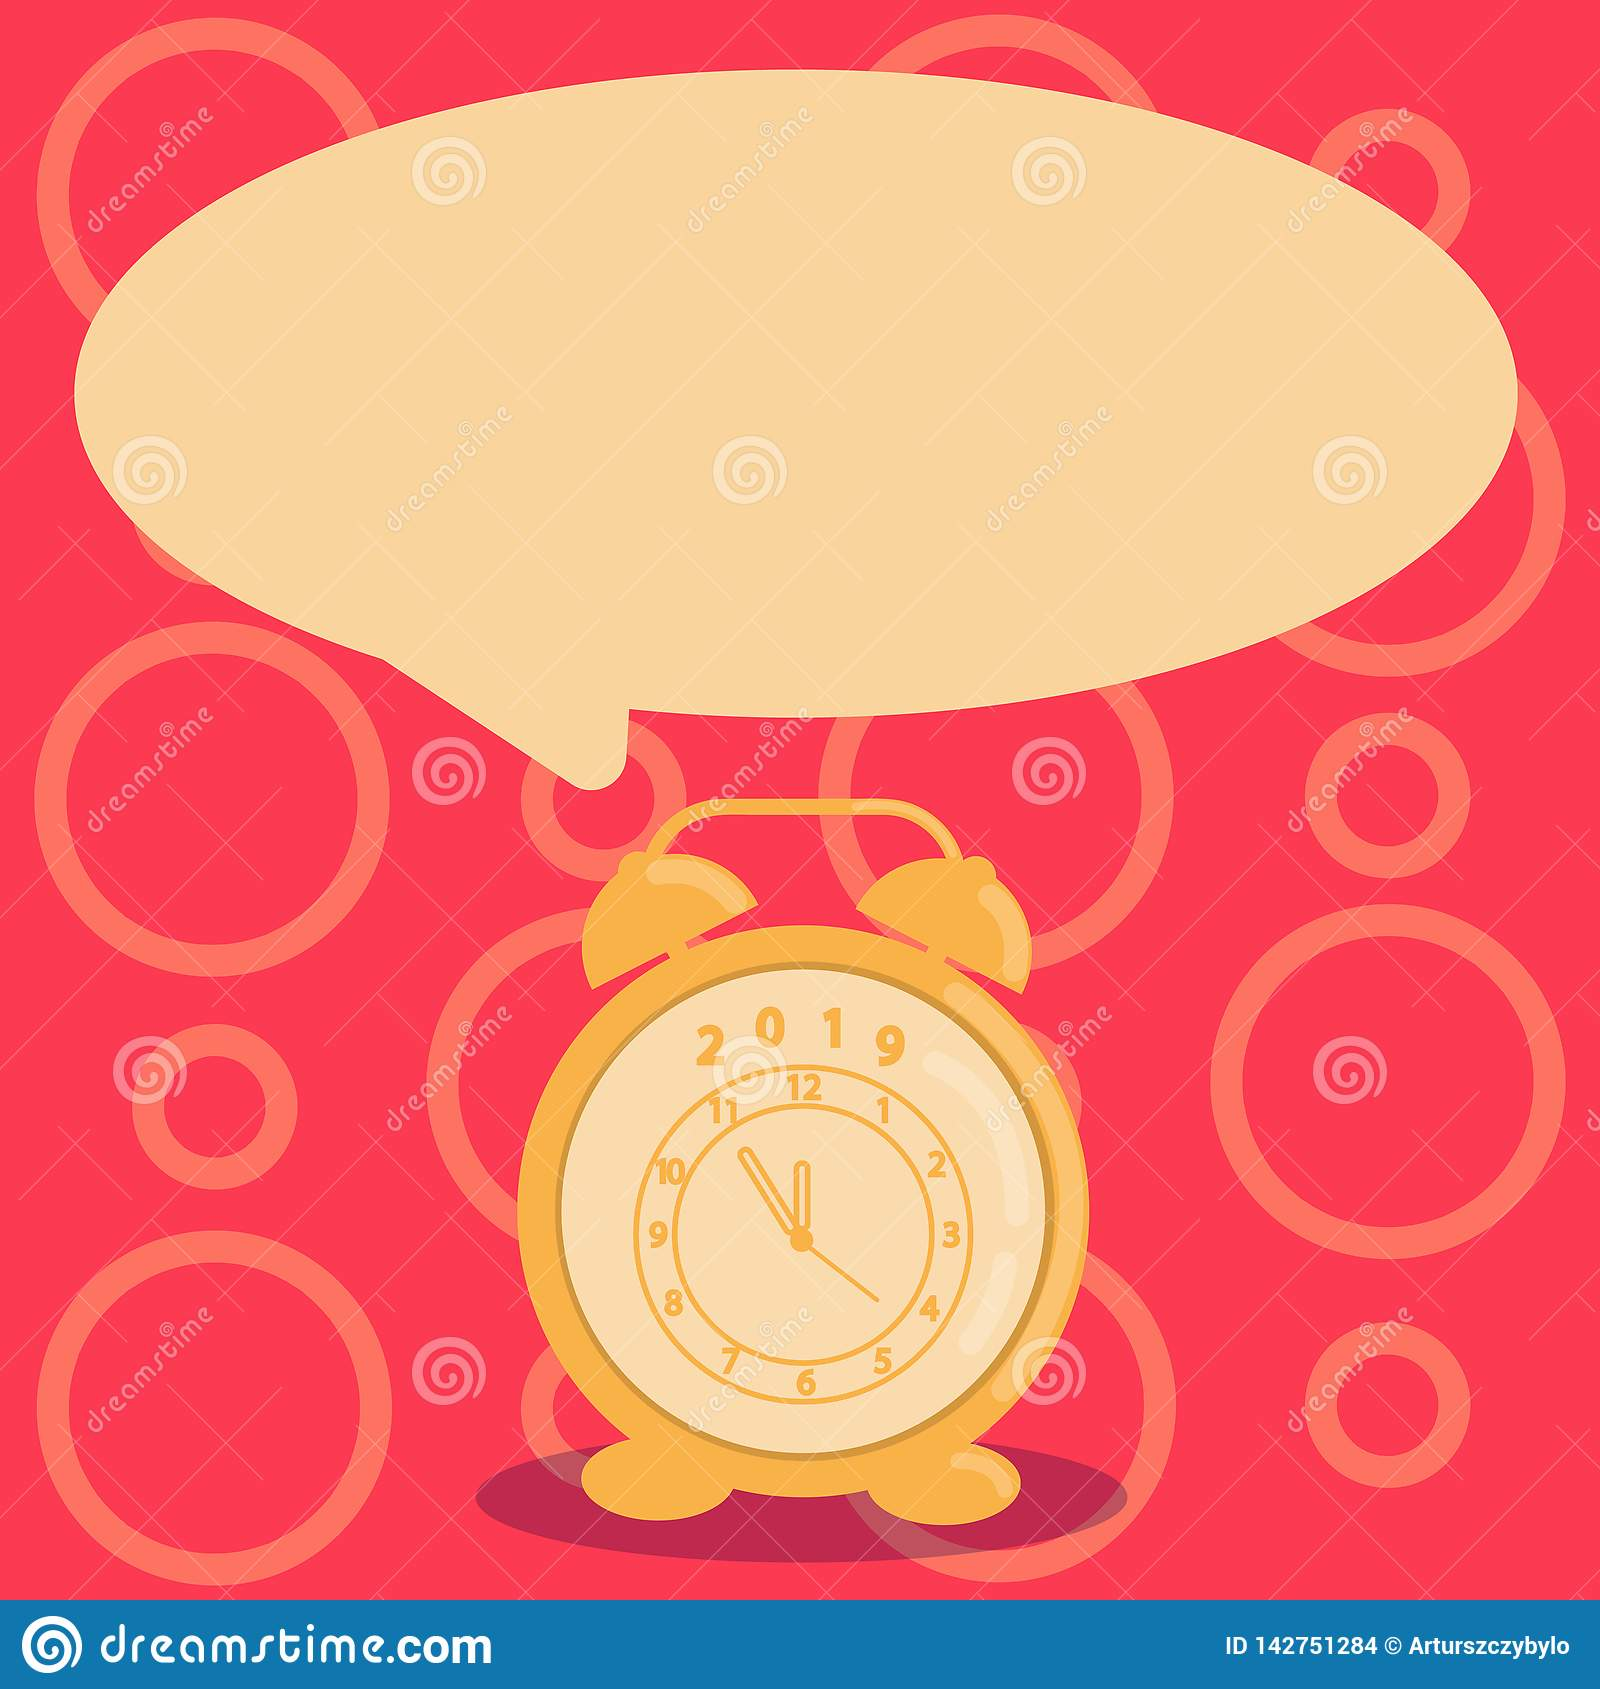 Round Shape Blank Speech Bubble And Analog Alarm Clock In